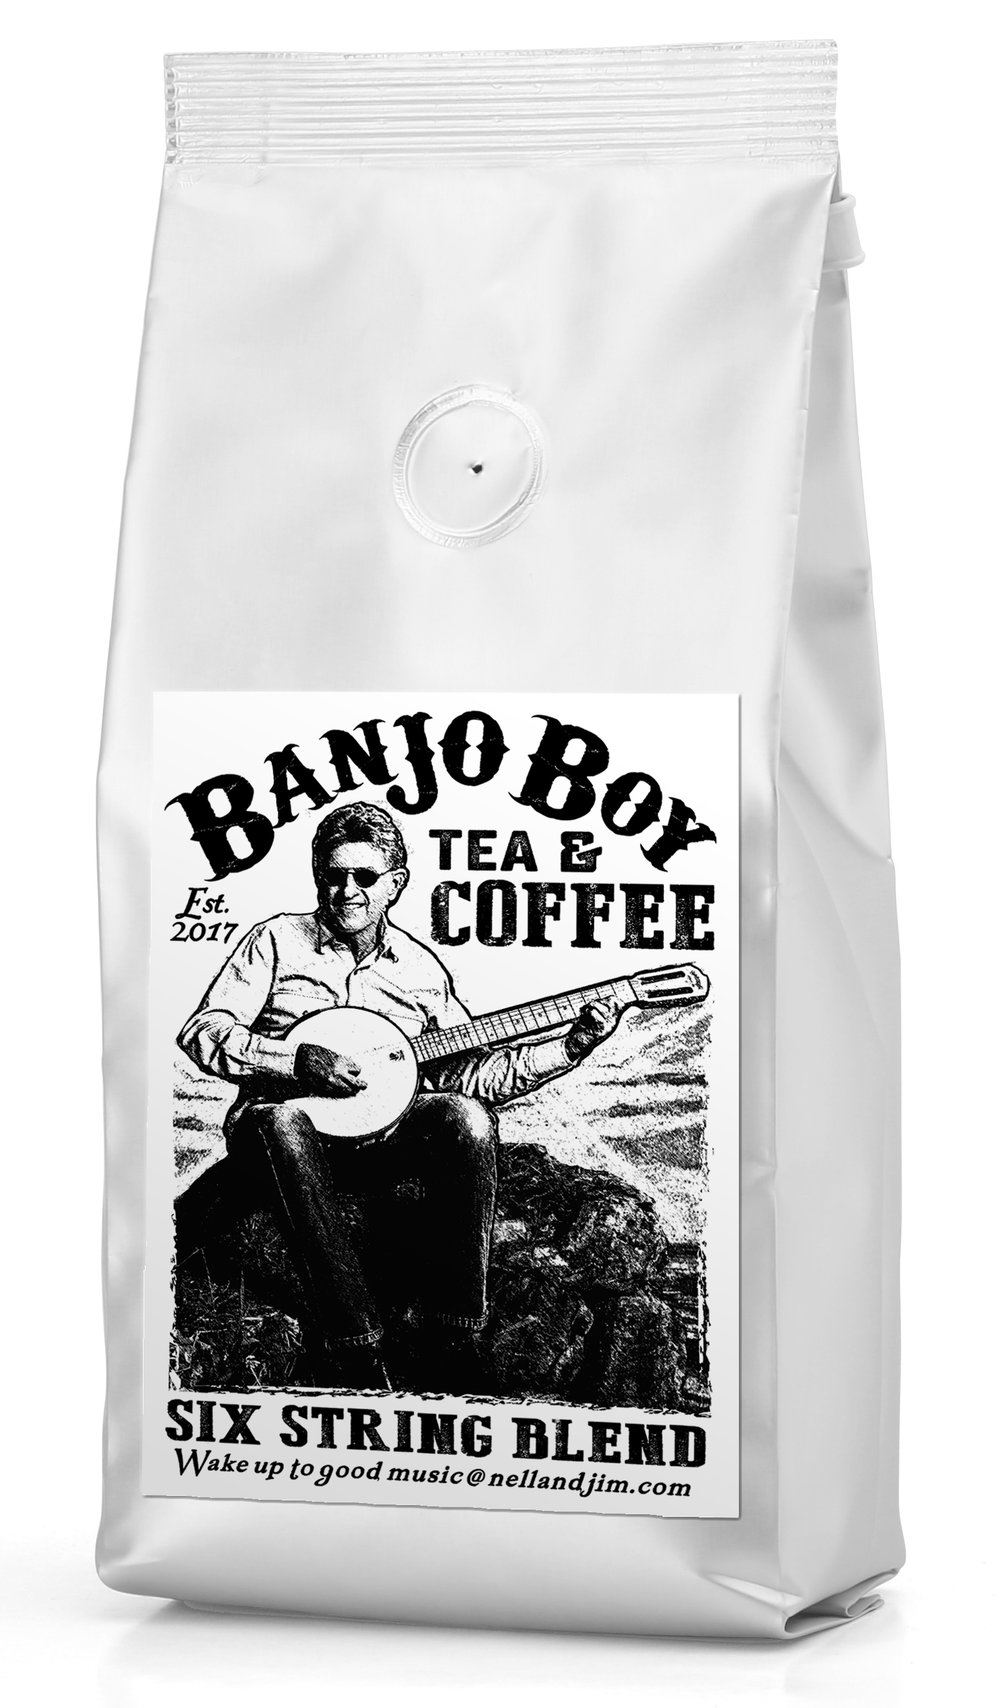 Six String Blend - This dark roast blend of beans from Indonesia and Africa has sweet, cherry and chocolate overtones—rich, smooth, finger-pickin' smooth tone.